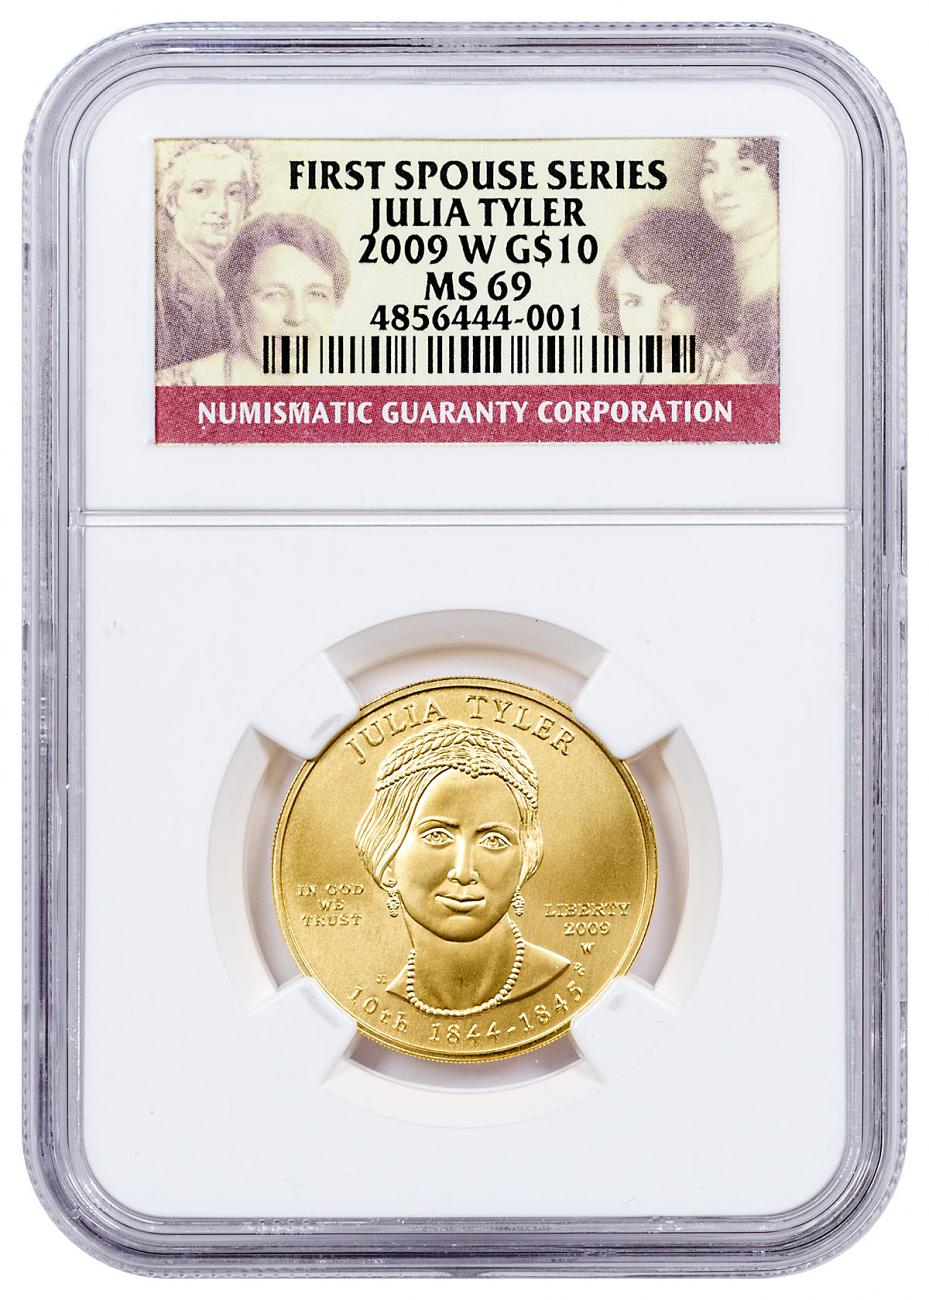 2009-W Julia Tyler First Spouse Gold $10 Coin NGC MS69